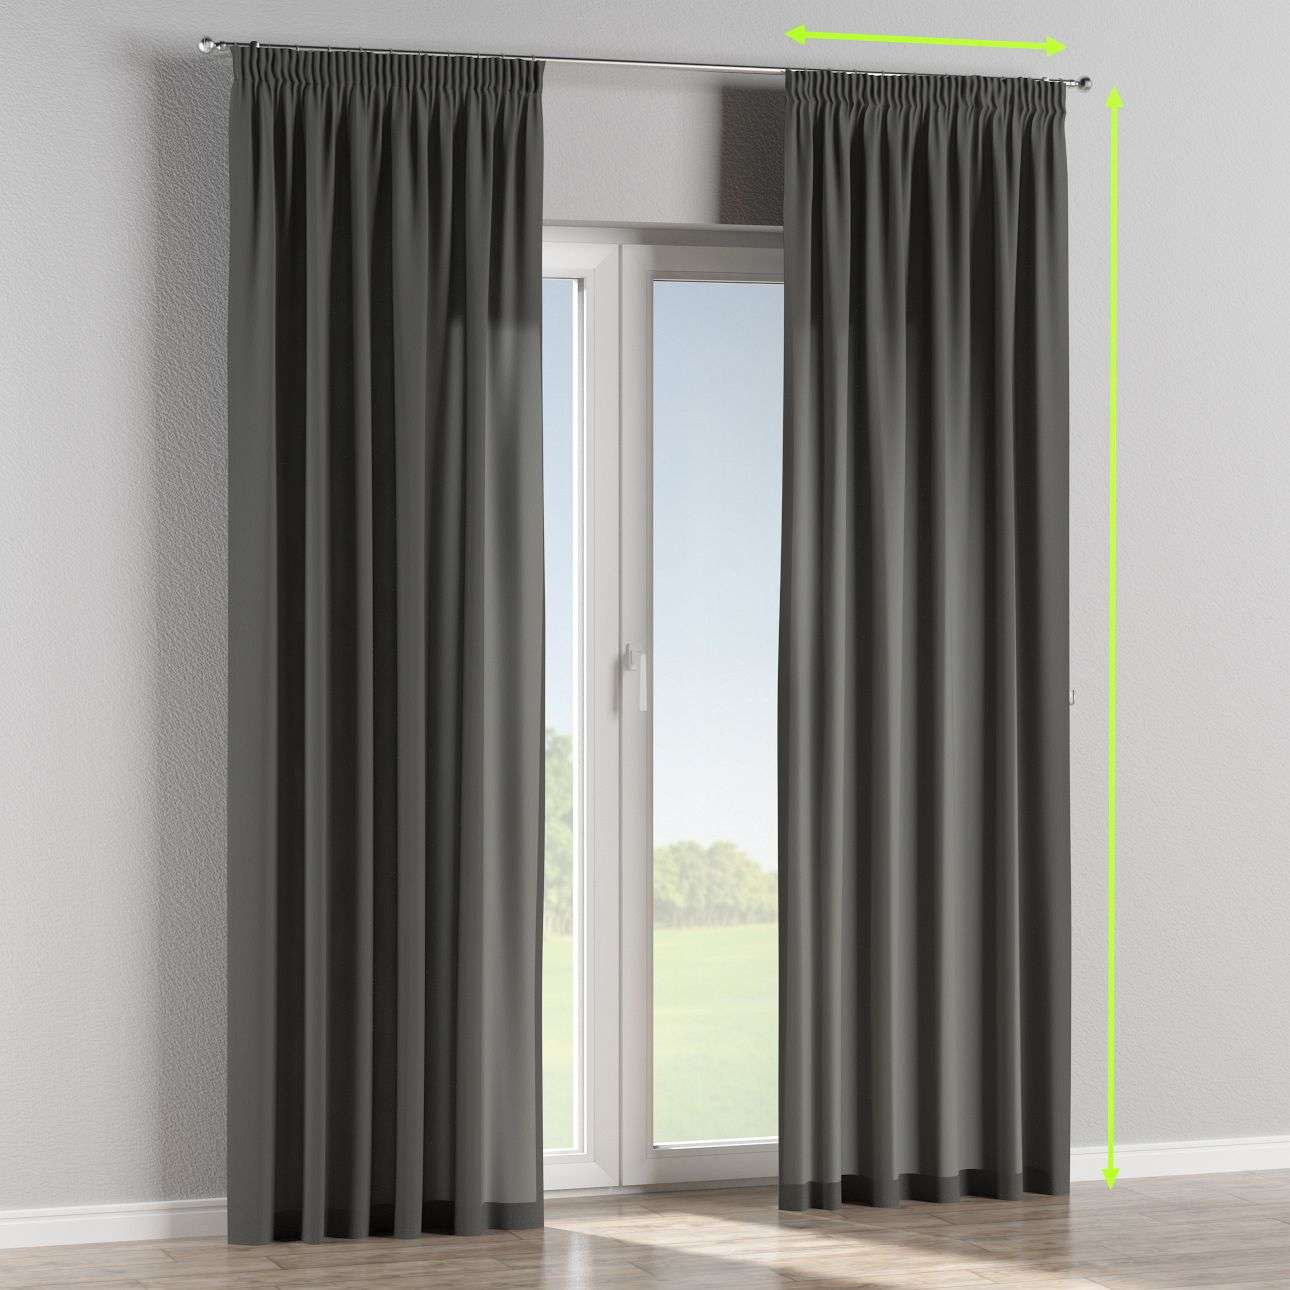 Pencil pleat lined curtains in collection Quadro, fabric: 136-14